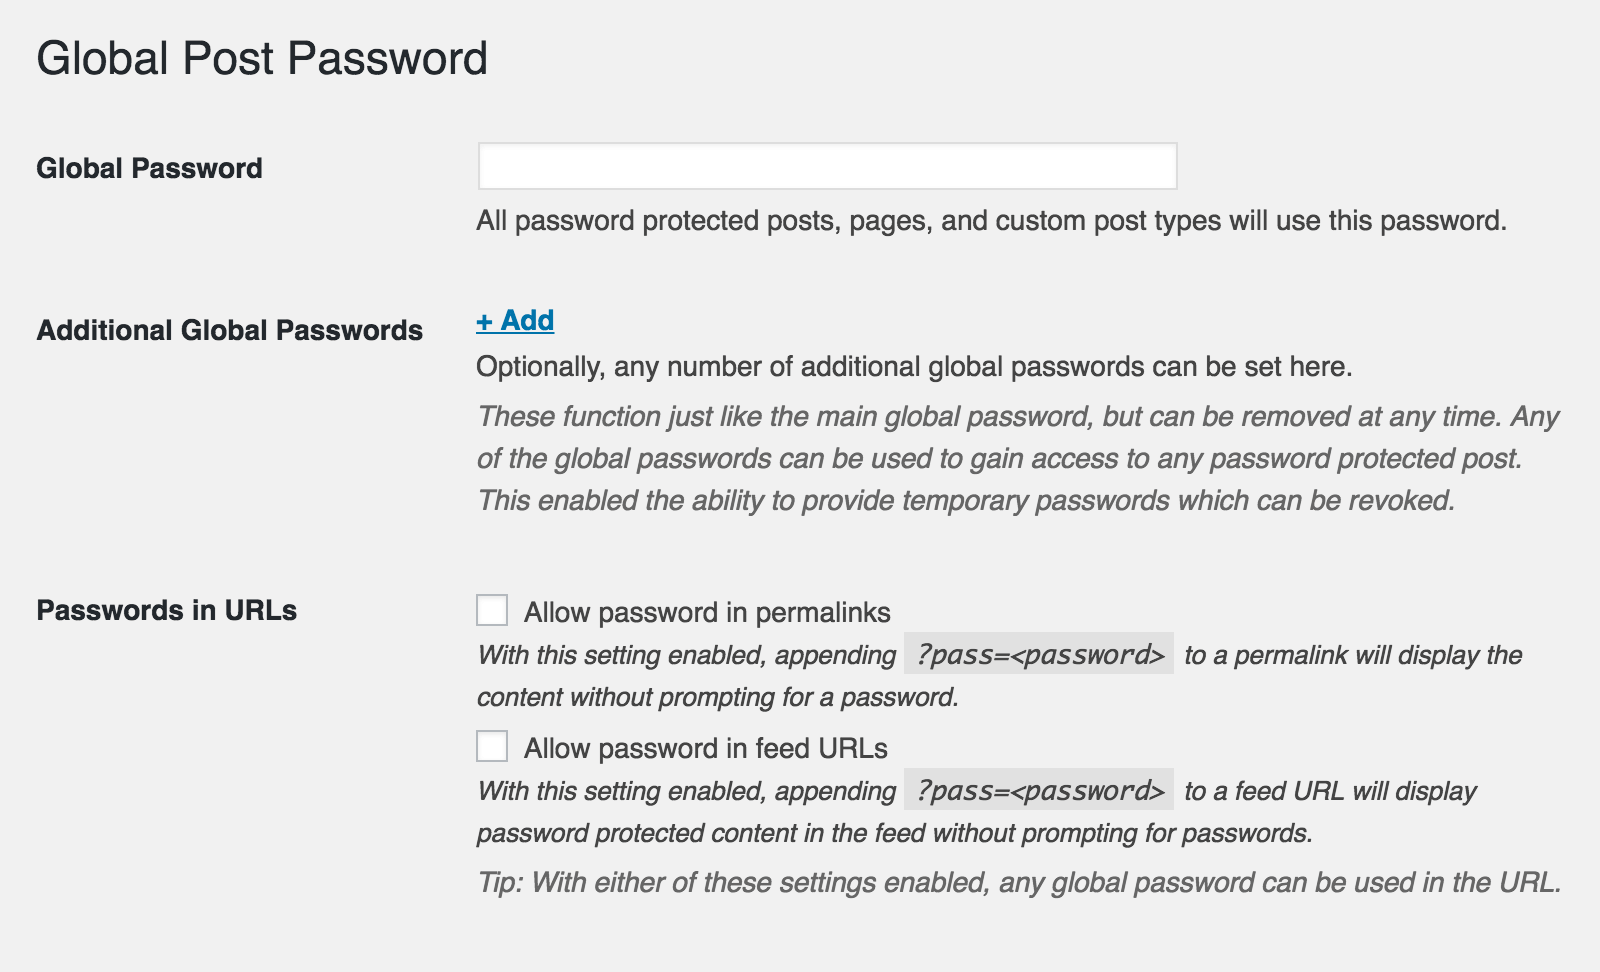 global-post-password screenshot 2